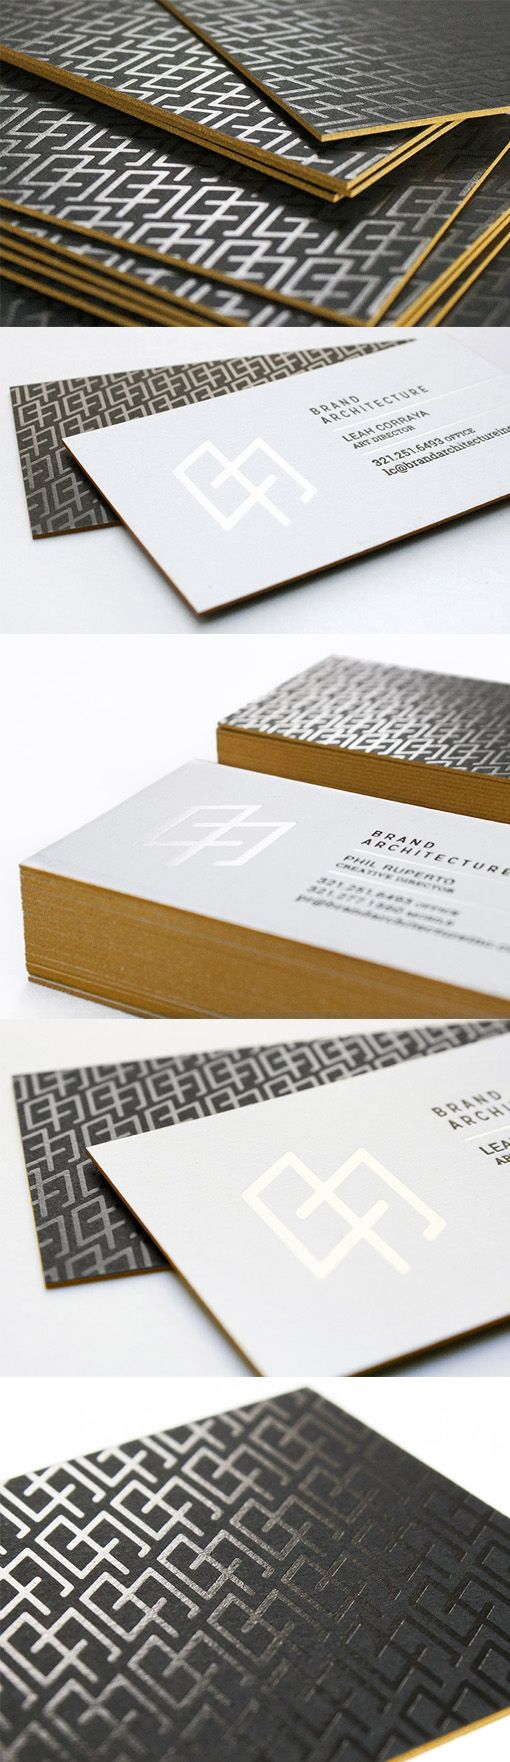 1616 Best Business Cards Images On Pinterest Brand Identity Design